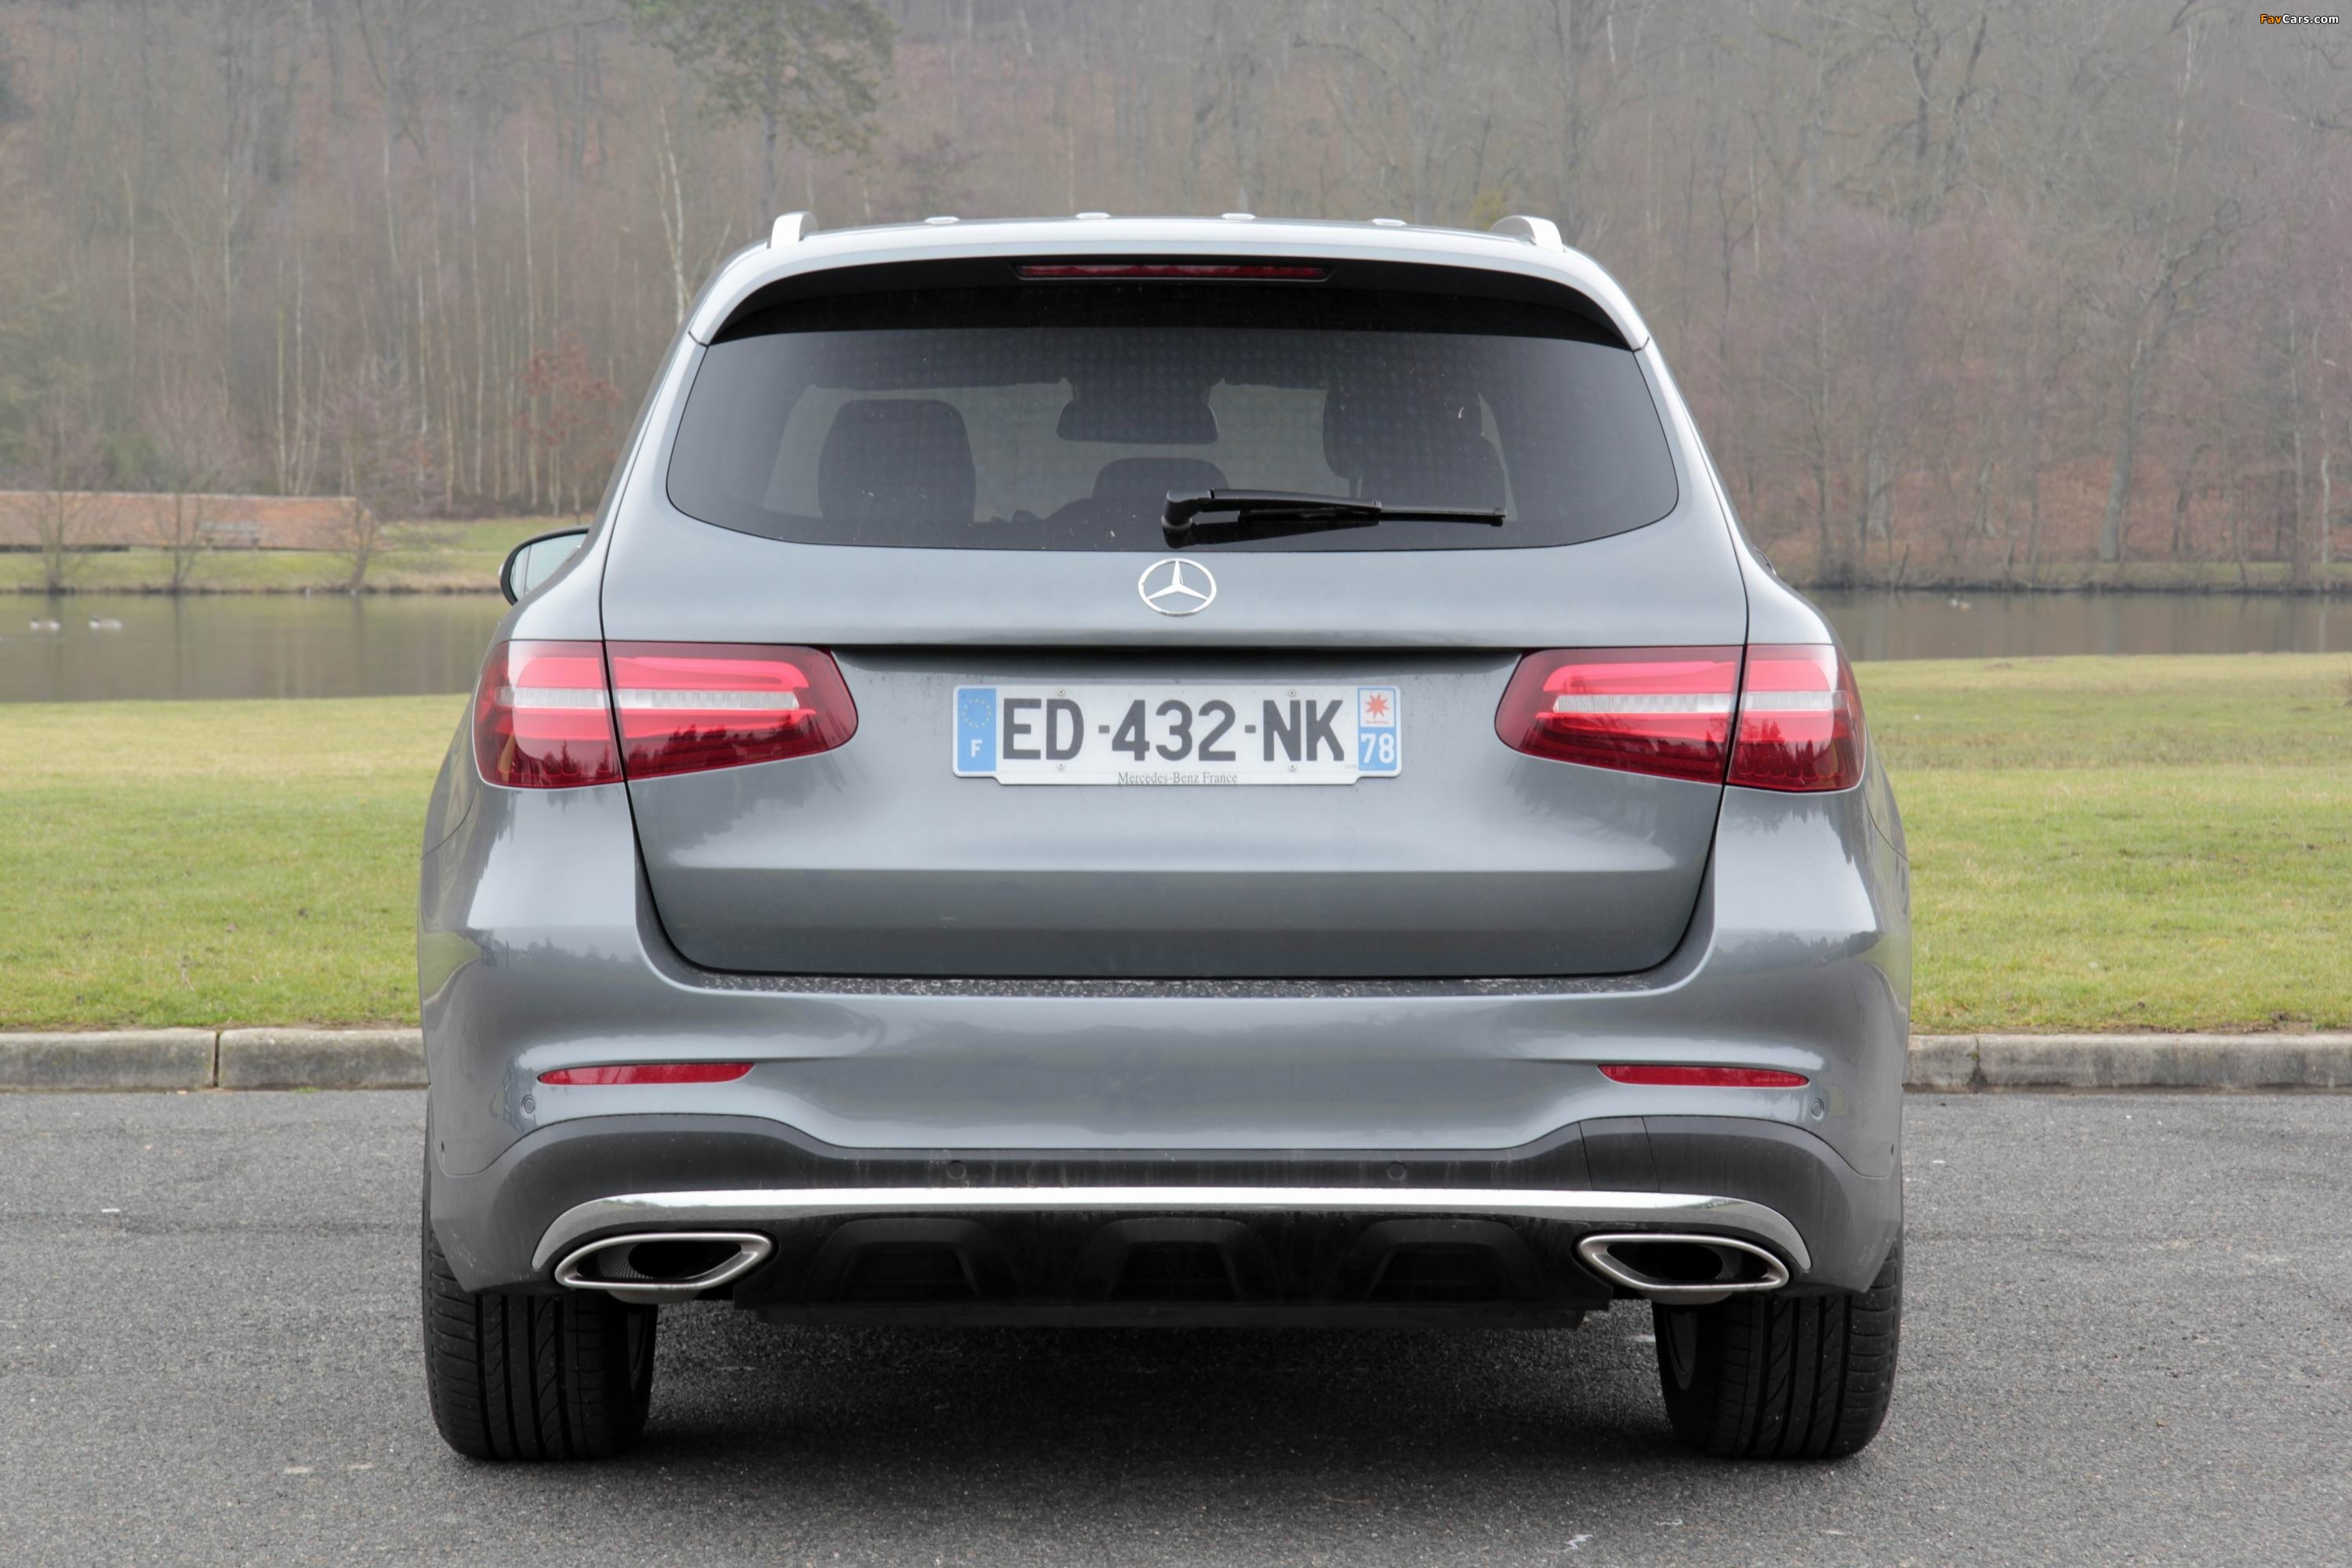 Mercedes-Benz GLC 250 4MATIC AMG Line (X253) 2015 pictures (3000 x 2000)